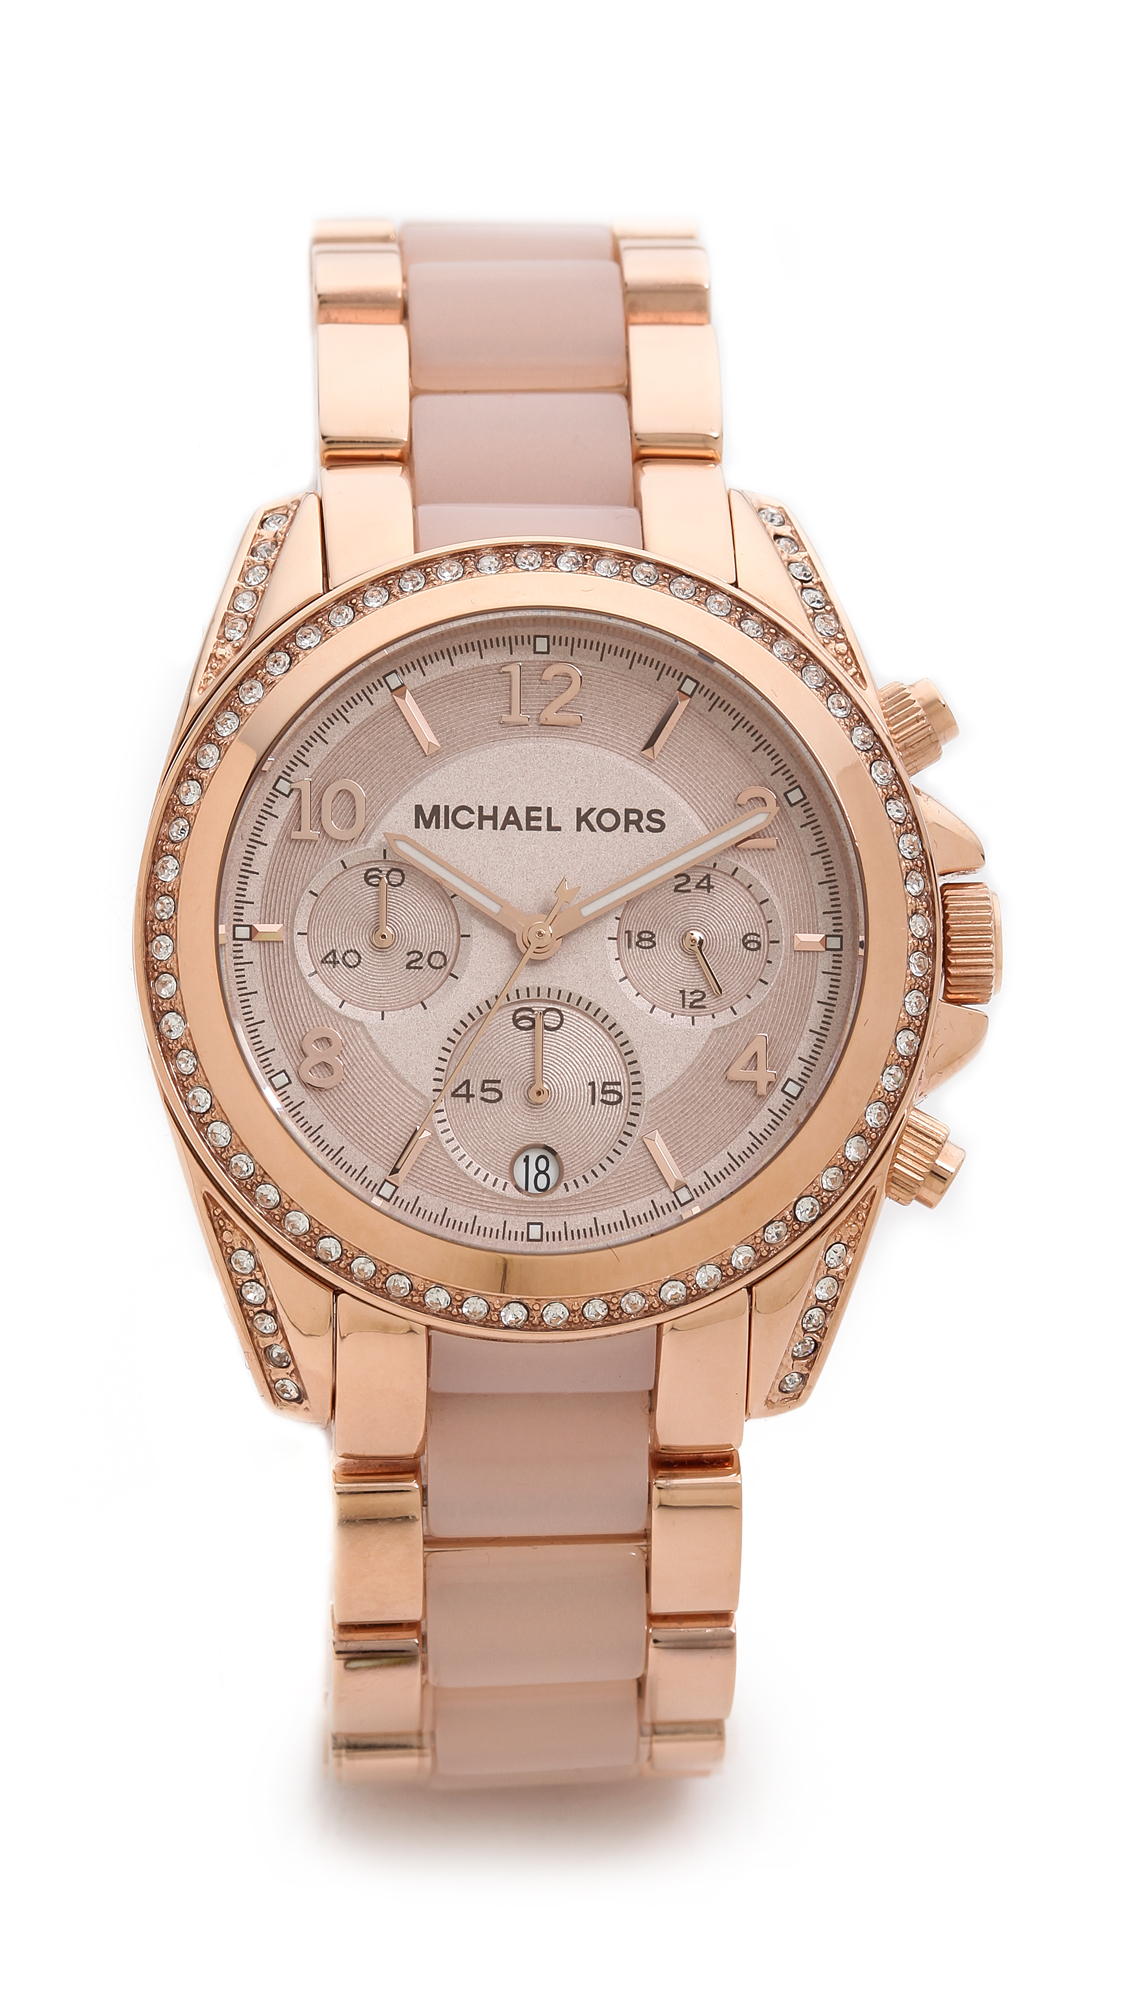 Michael kors blair watch rose gold in metallic lyst for Watches michael kors